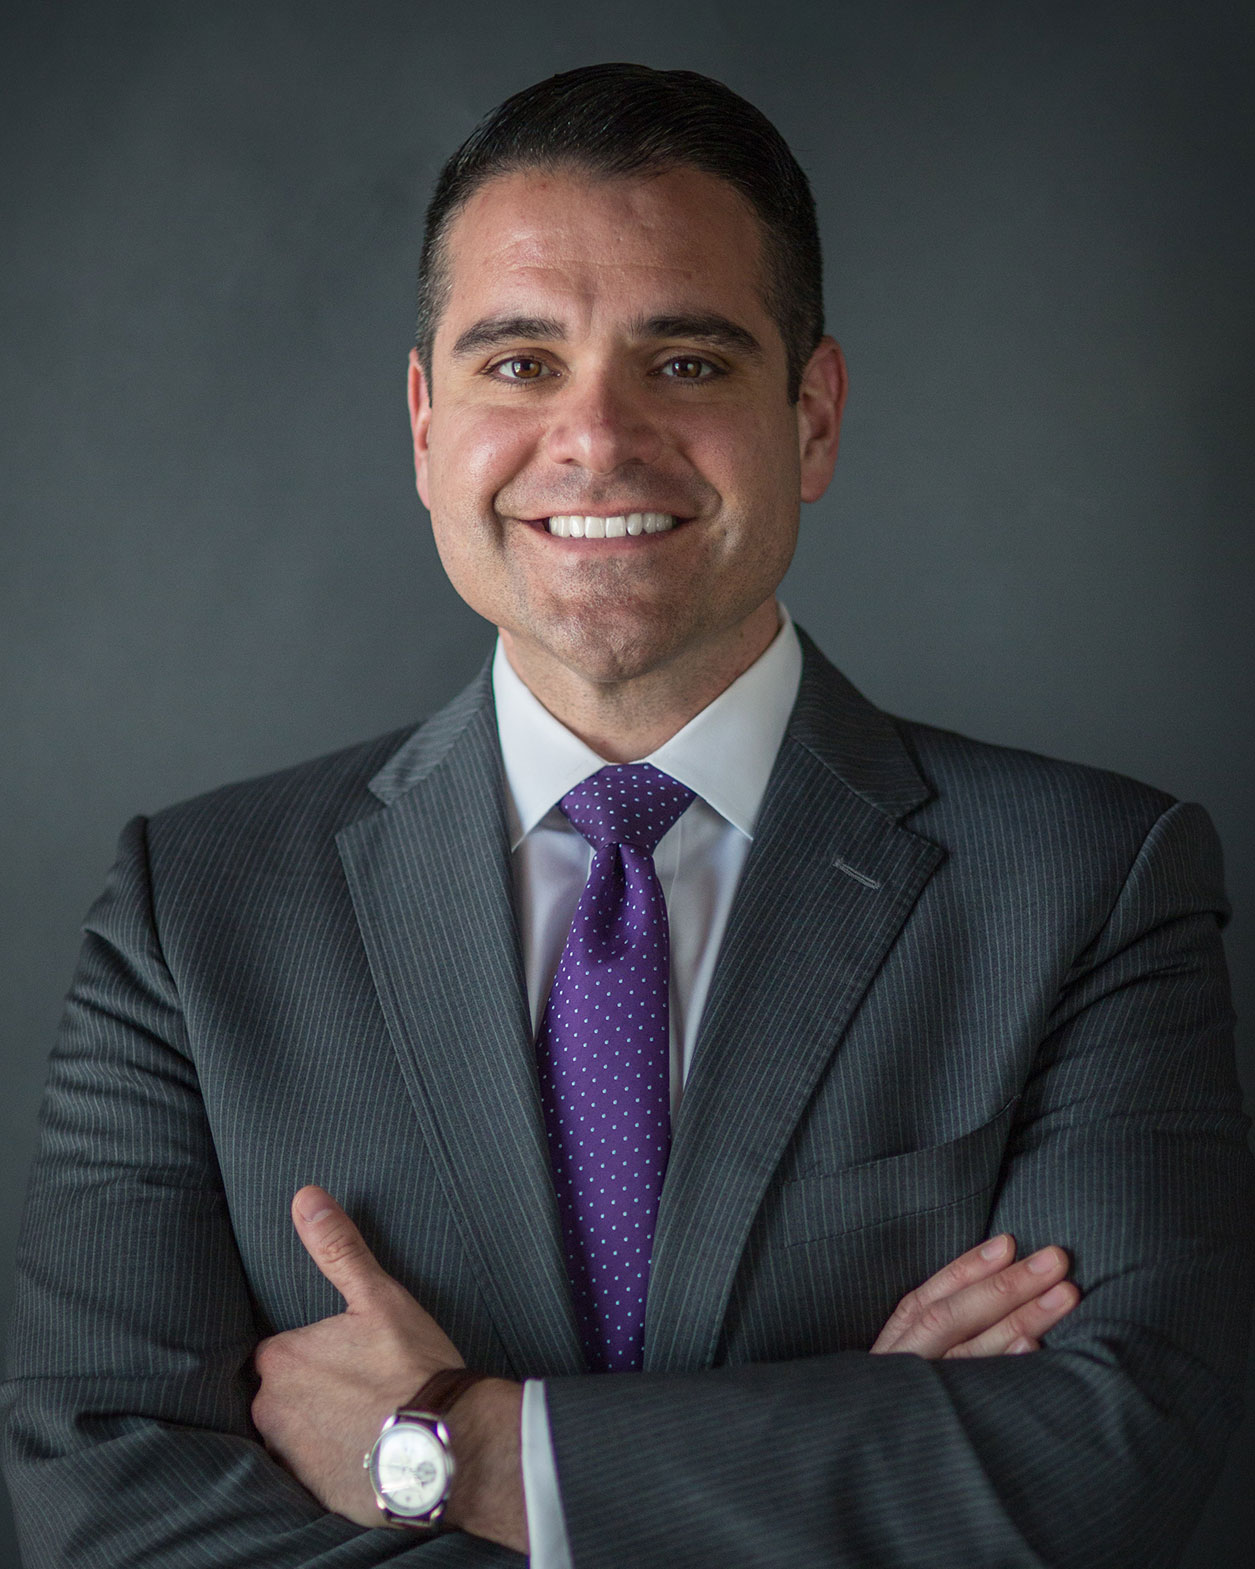 Jorge Castañeda Lawyer Profile Pic